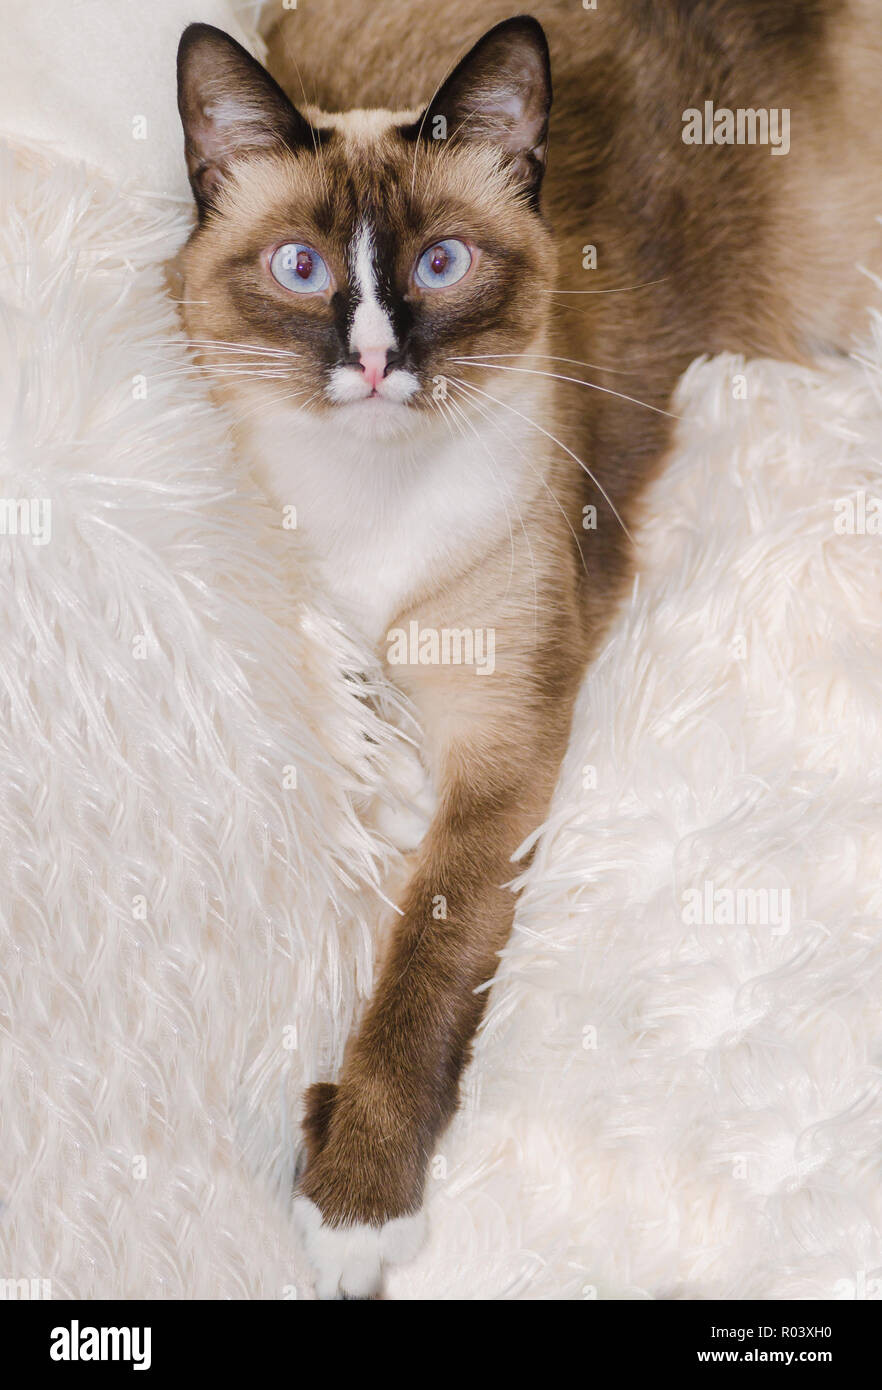 Twinkie, a two-year-old Siamese cat, rests on a white blanket, October 30, 2015. - Stock Image